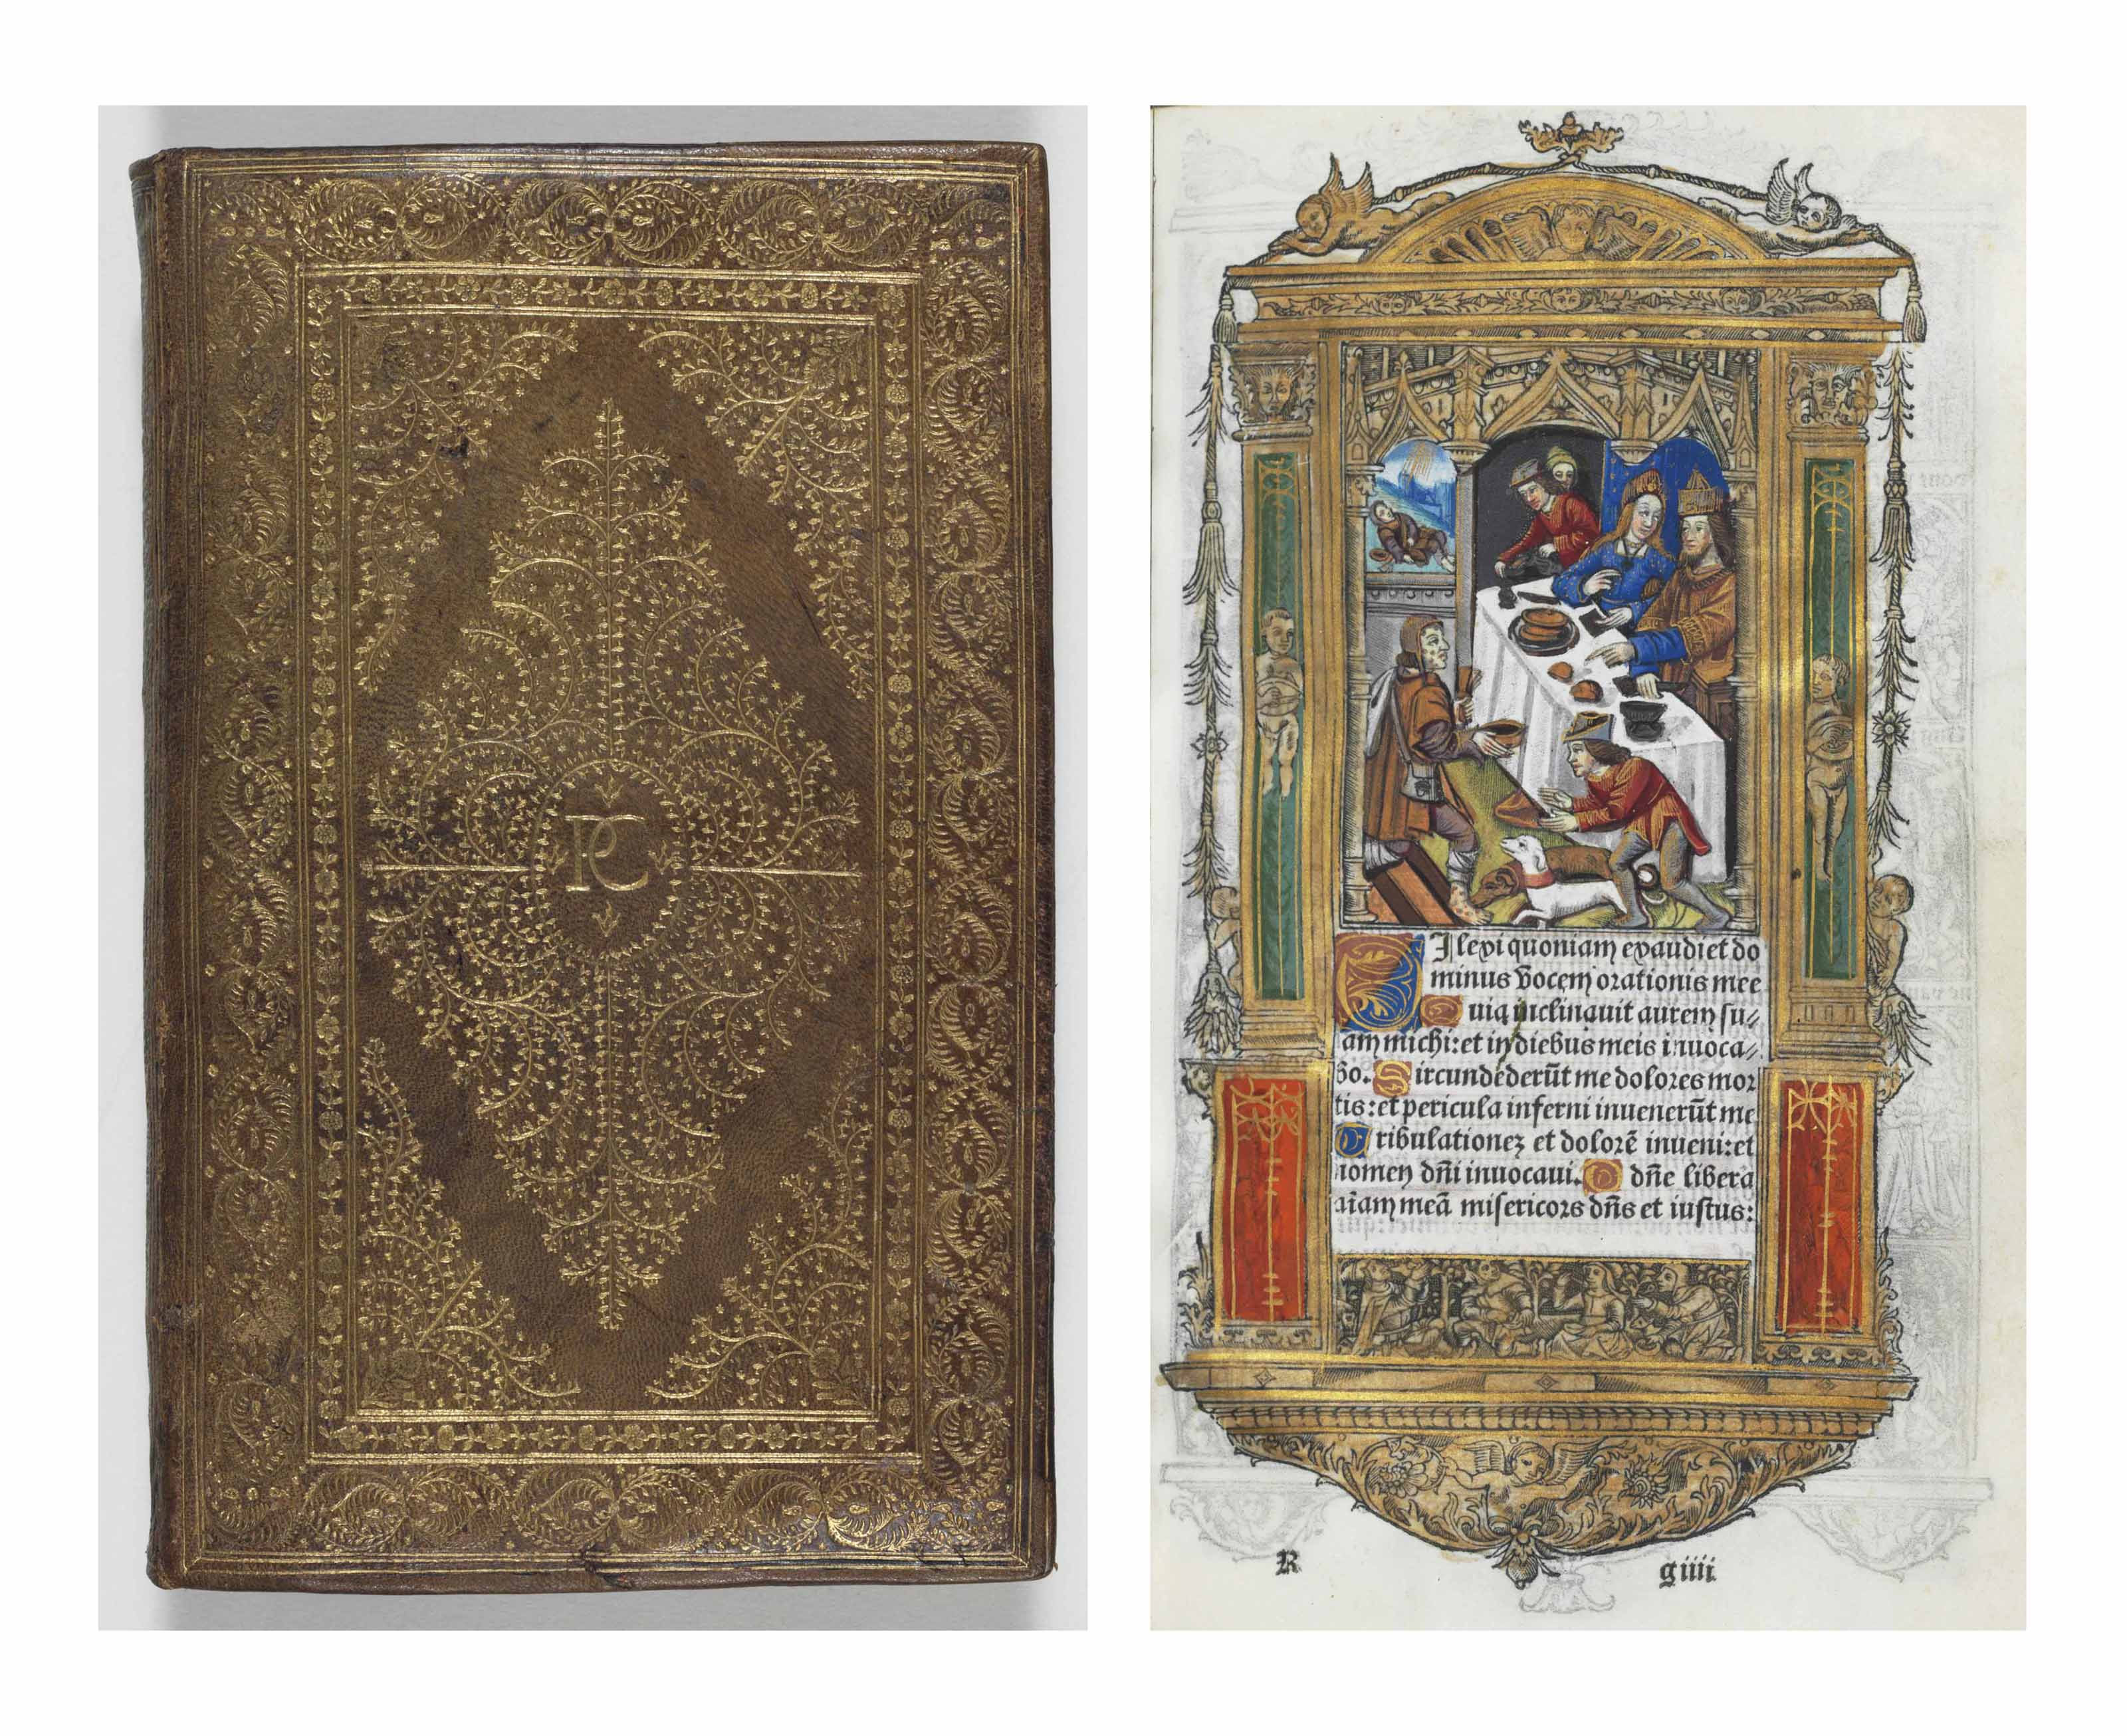 BOOK OF HOURS, use of Rome, La